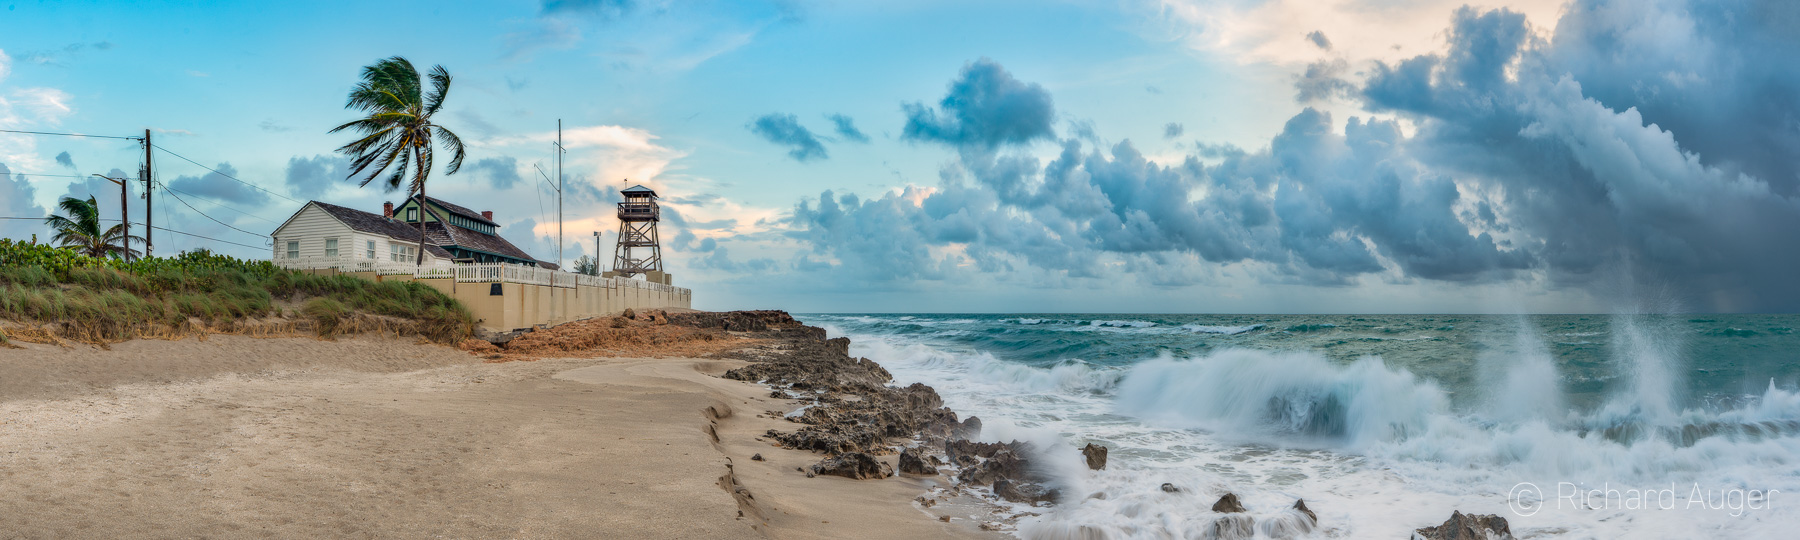 House of Refuge, Stuart, Florida Lighthouse